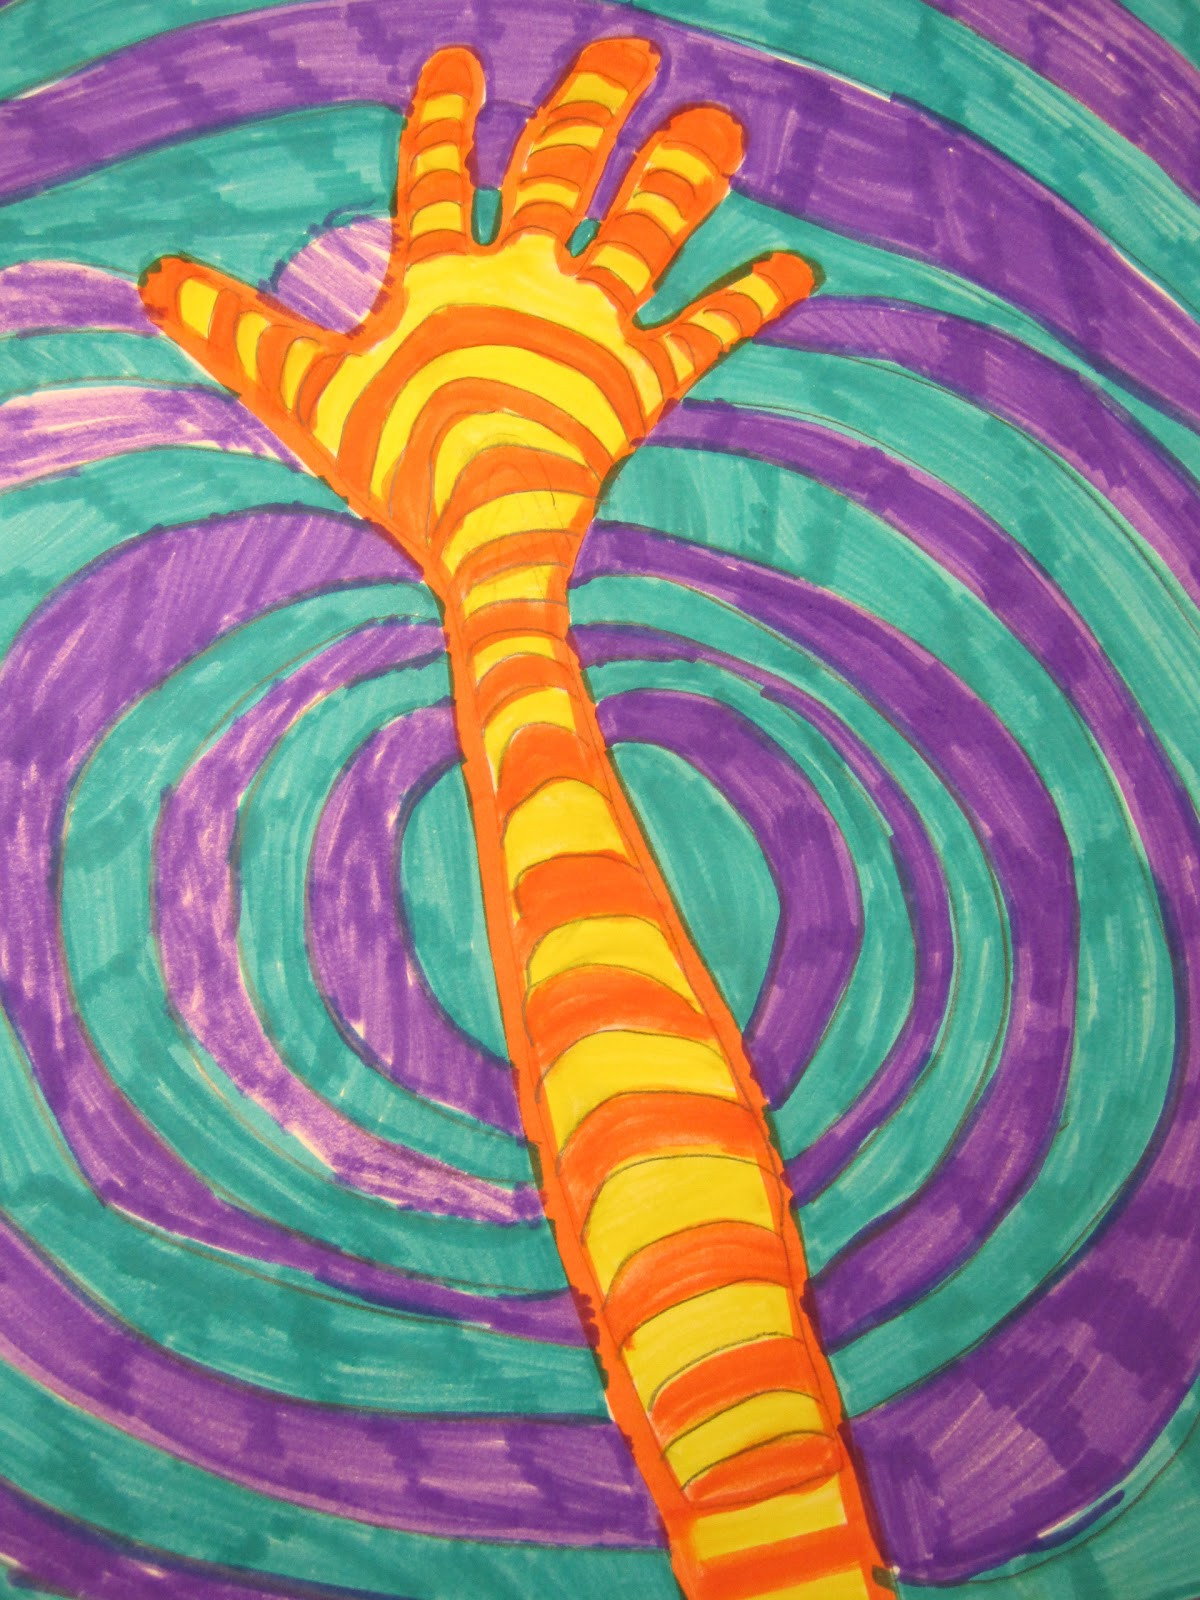 Think Create Art Warm And Cool Color Hands 2nd Grade